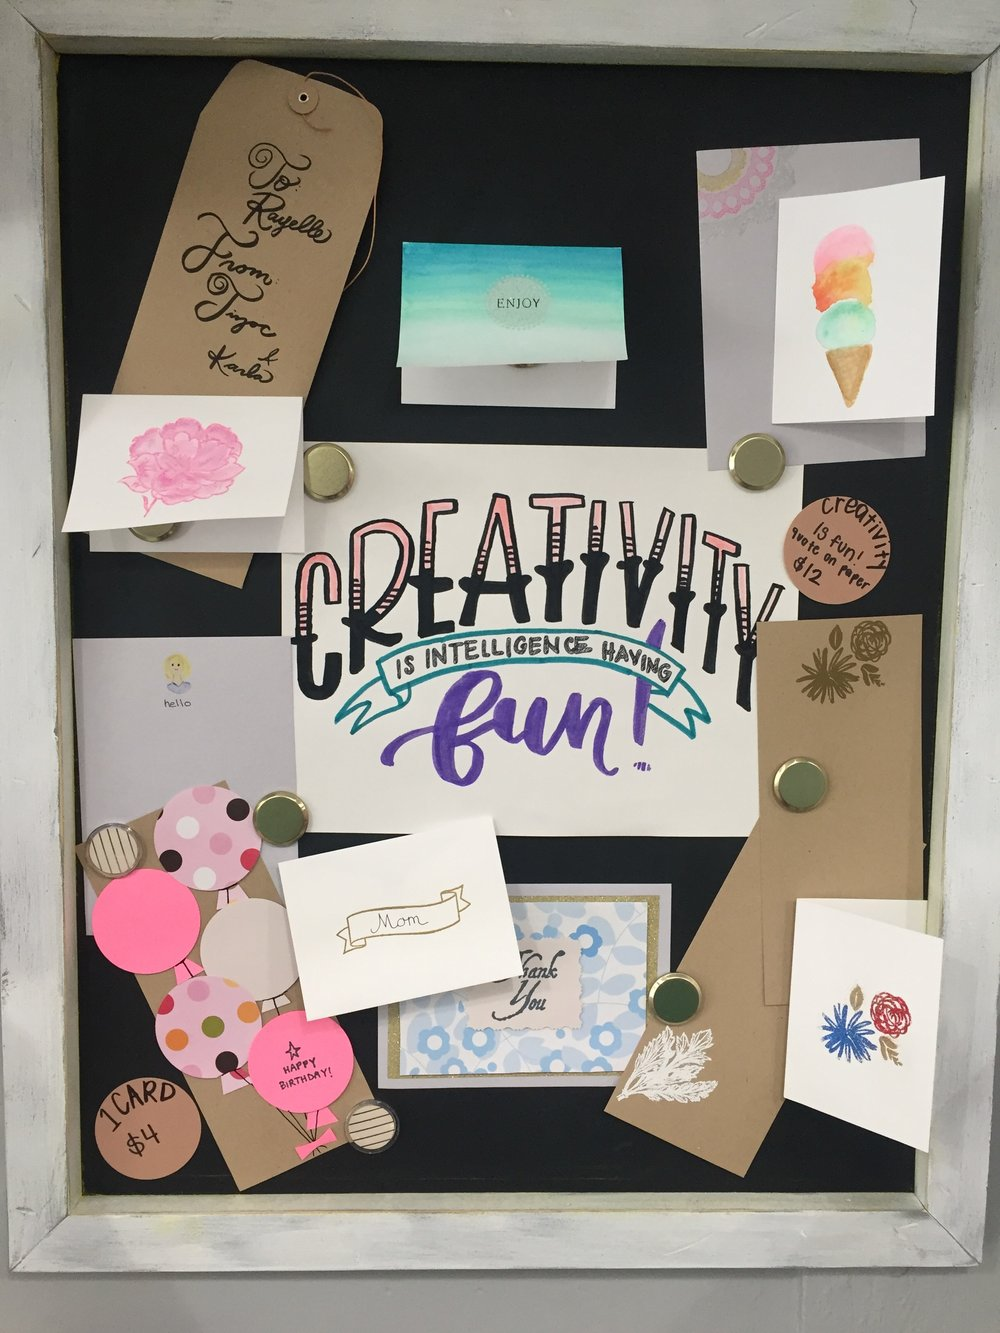 "Paper & Multimedia - 1 card $4 / 3 cards - $129 x 12 mixed media paper - $12""Creativity is intelligence having fun"" hand lettering artwork quote on 9 x 12 mixed media paper for you to color and customize - $12"